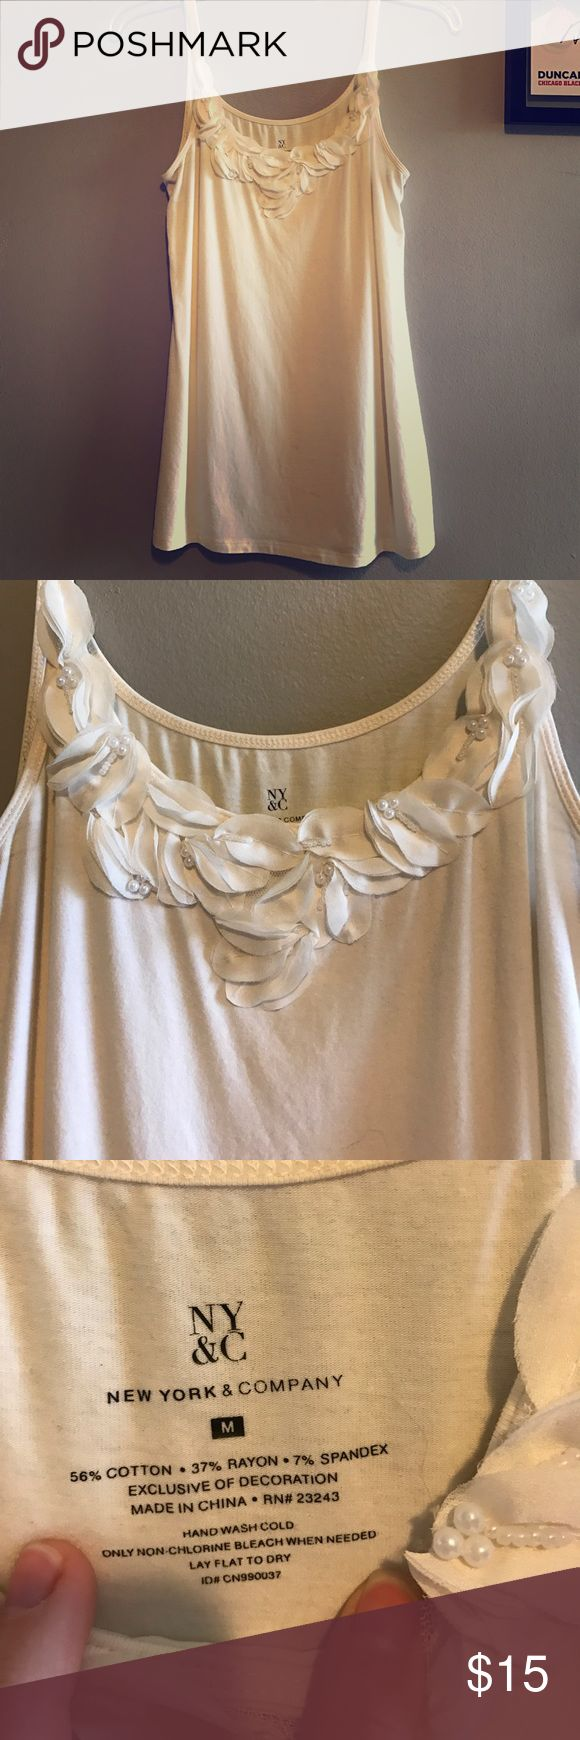 Cream cami with flower detail Crean cami from NY&Co beautiful detailing on the neckline. Size medium. Gently loved. New York & Company Tops Camisoles